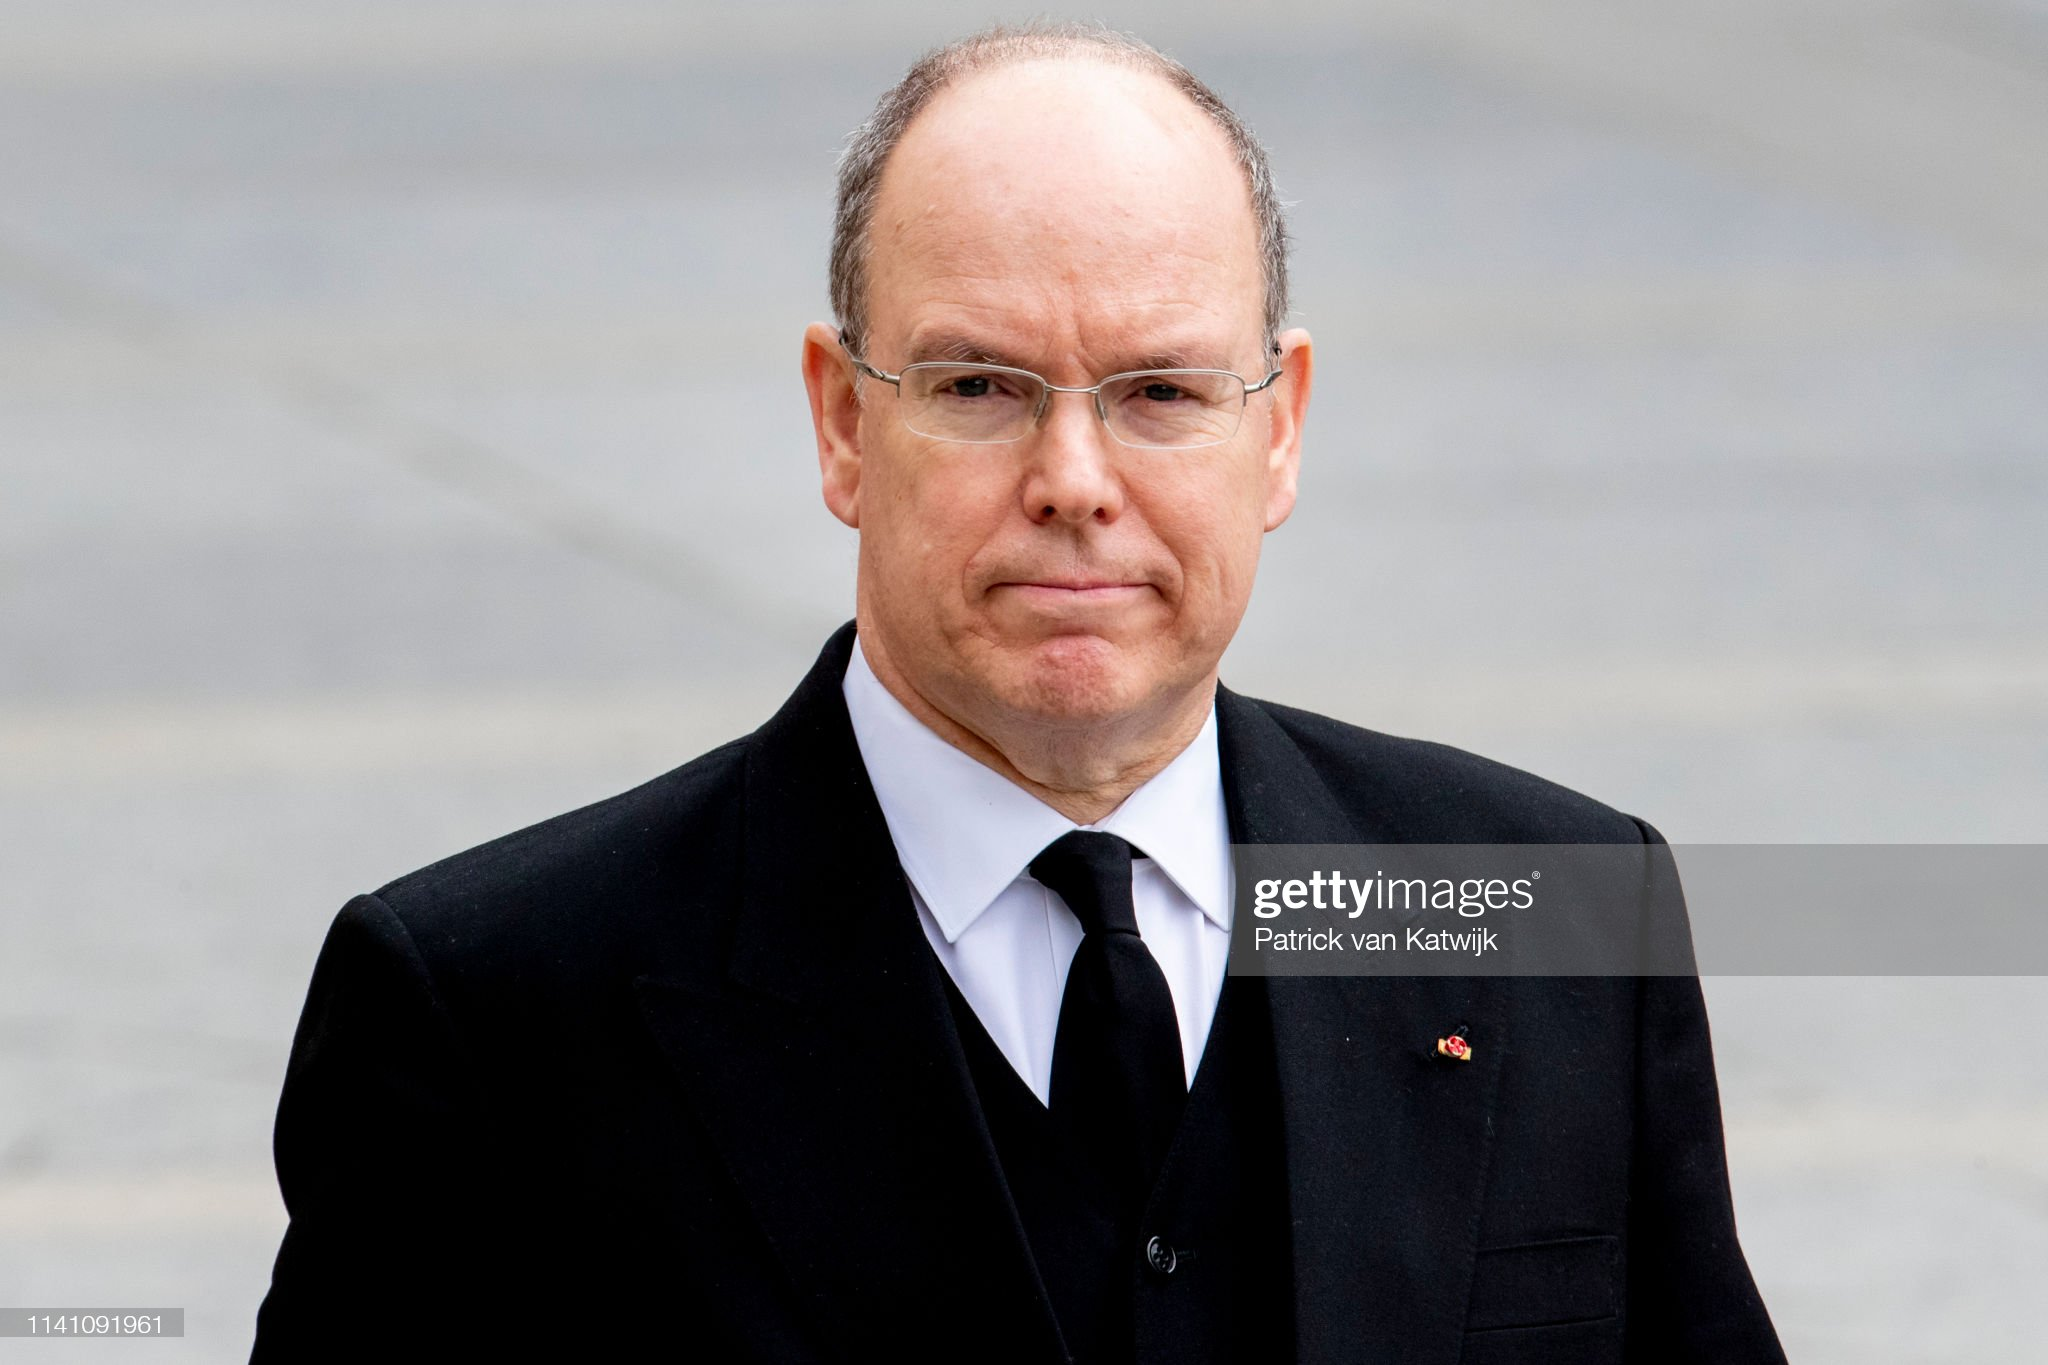 https://media.gettyimages.com/photos/prince-albert-of-monaco-attend-the-funeral-of-grand-duke-jean-on-may-picture-id1141091961?s=2048x2048